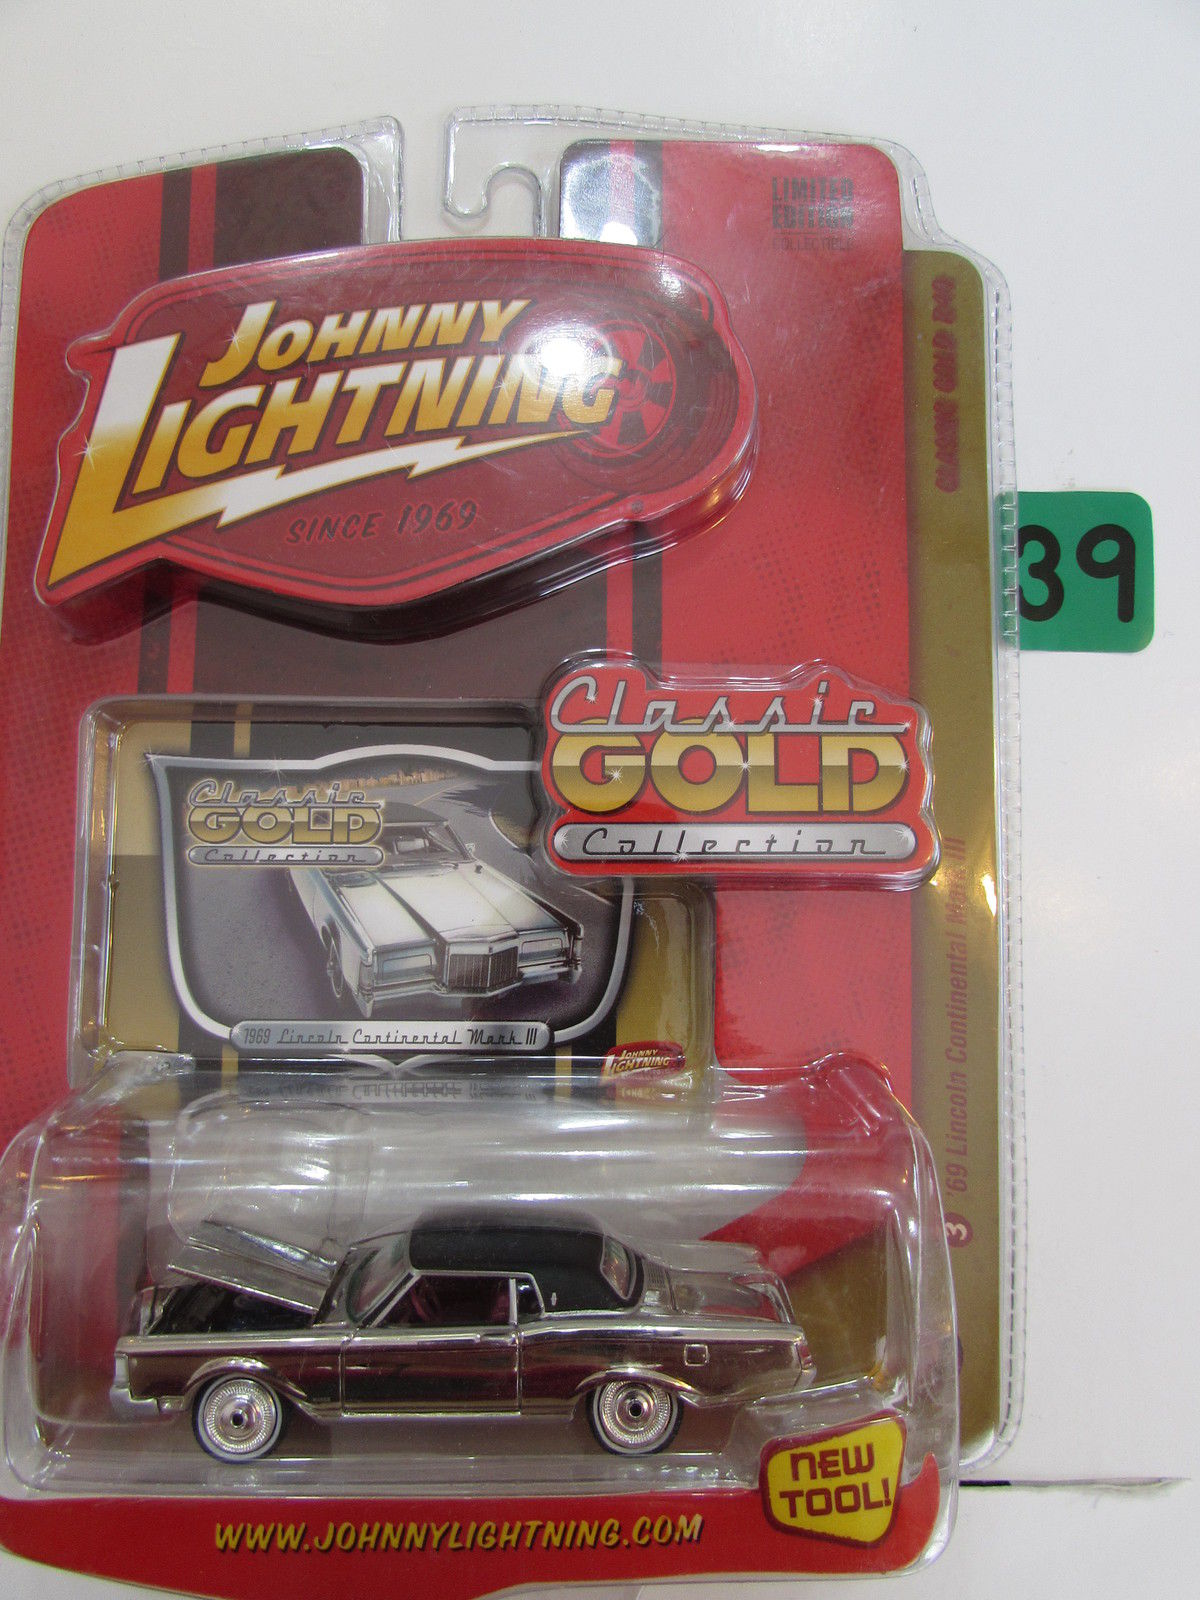 JOHNNY LIGHTNING 2008 CLASSIC GOLD COLLECTION '69 LINCOLN CONTINENTAL MARK III